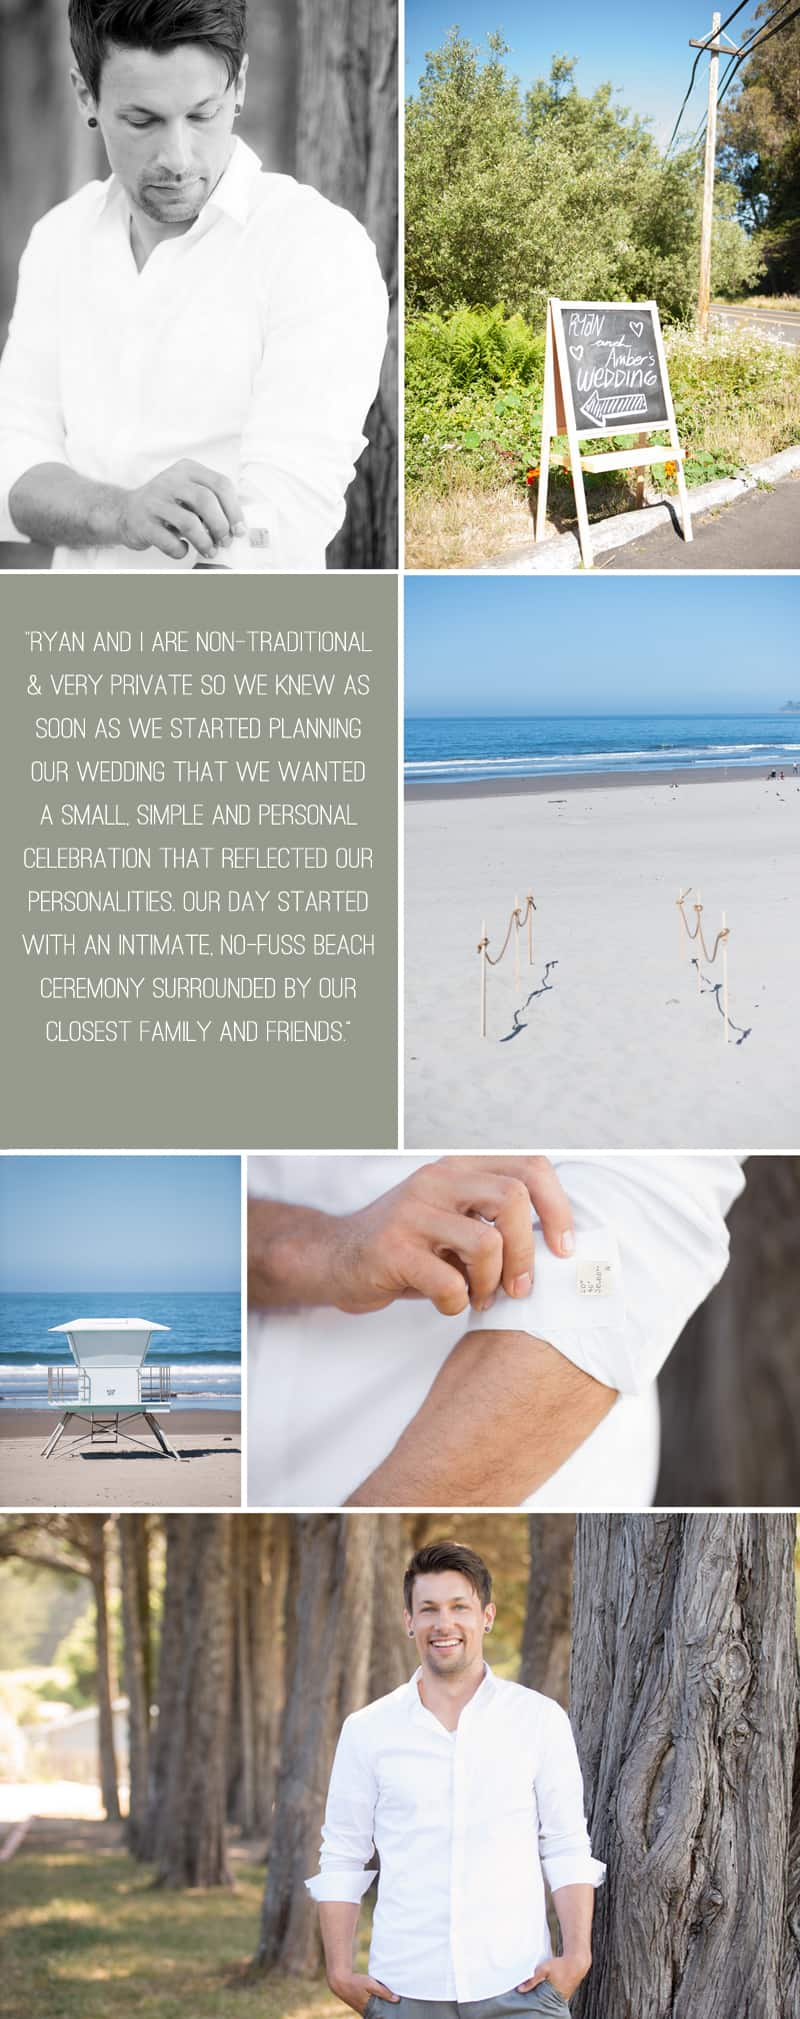 An Intimate Rustic Beach Wedding 1